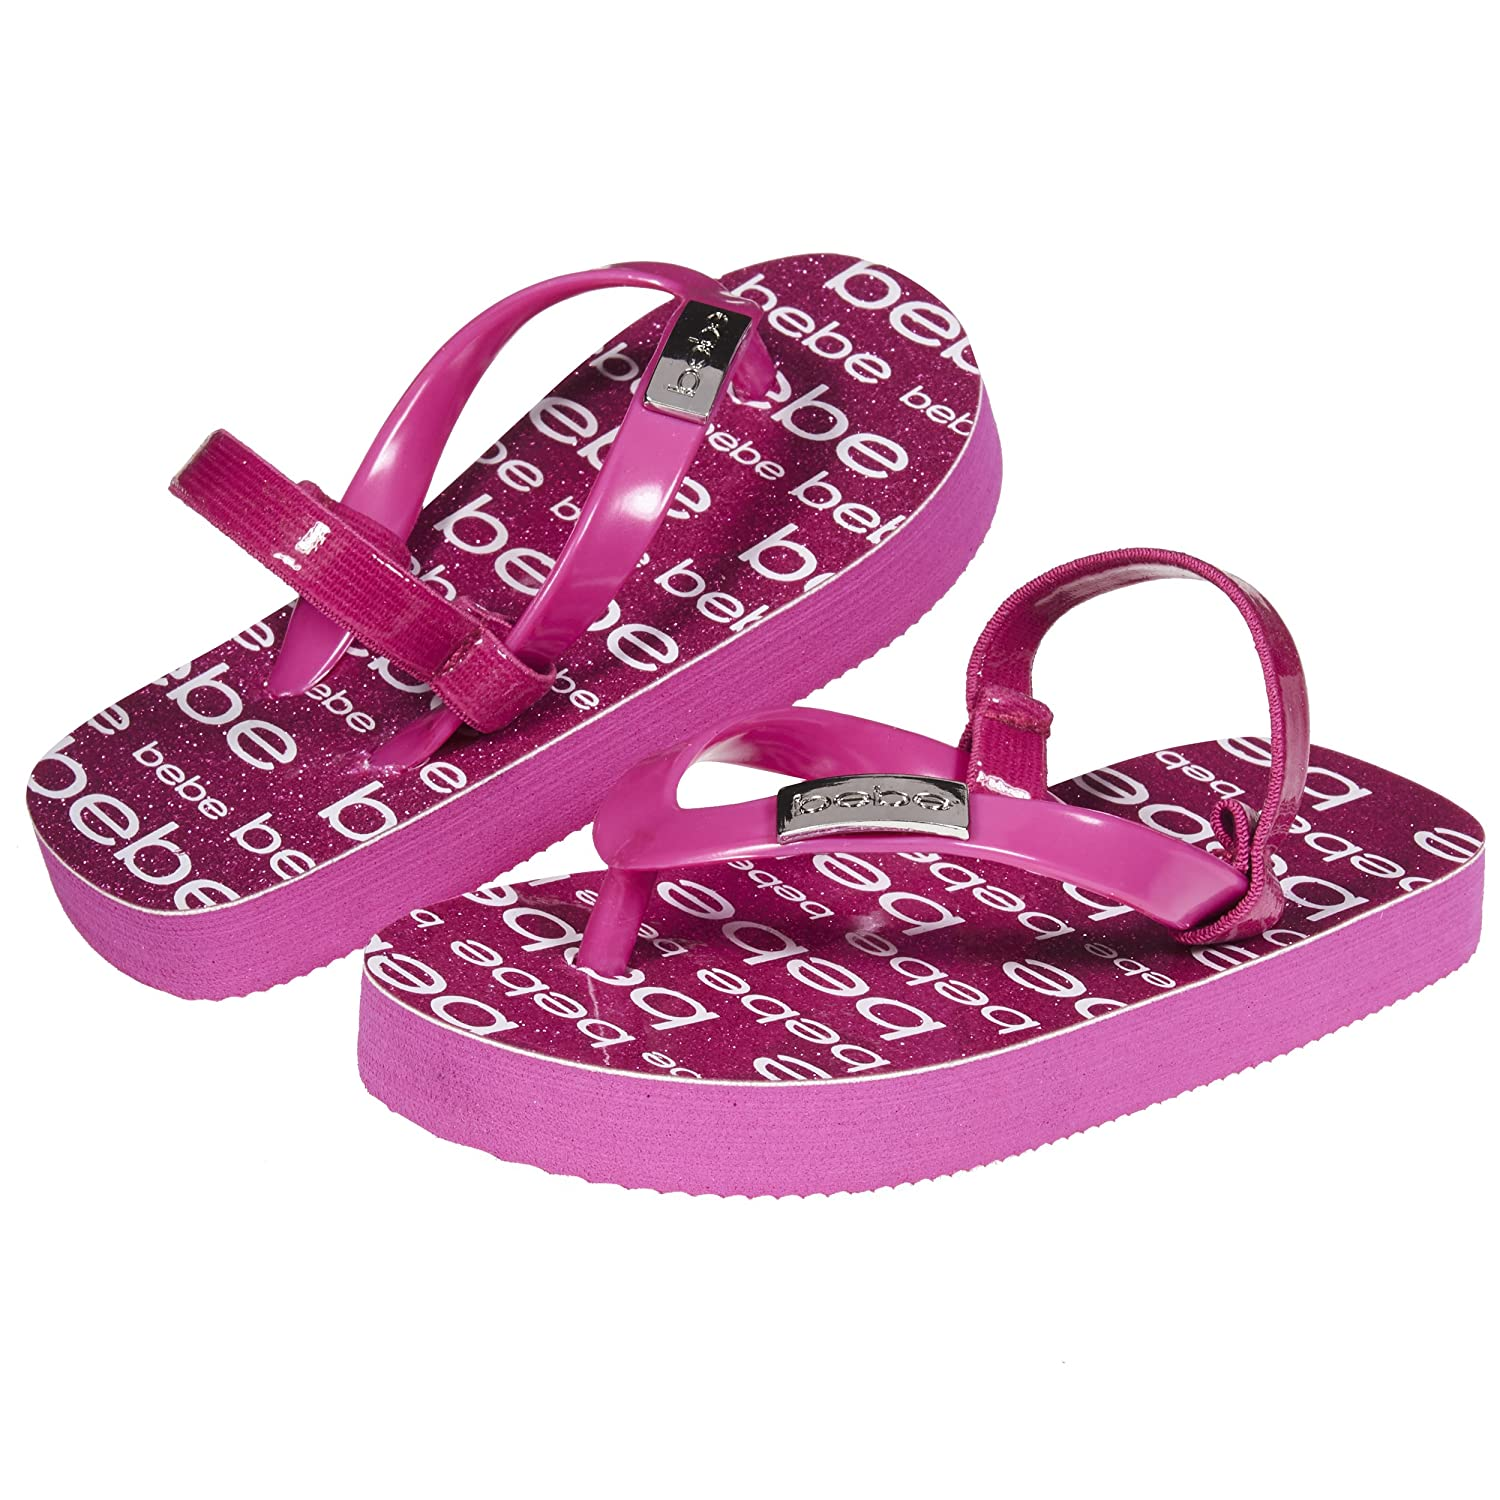 95a527f15d50 FLIP FLOPS FOR TODDLER GIRLS - Flip flops are just what a little girl needs  to complete her warm weather look. A delightful glitter footbed and  pearlized ...